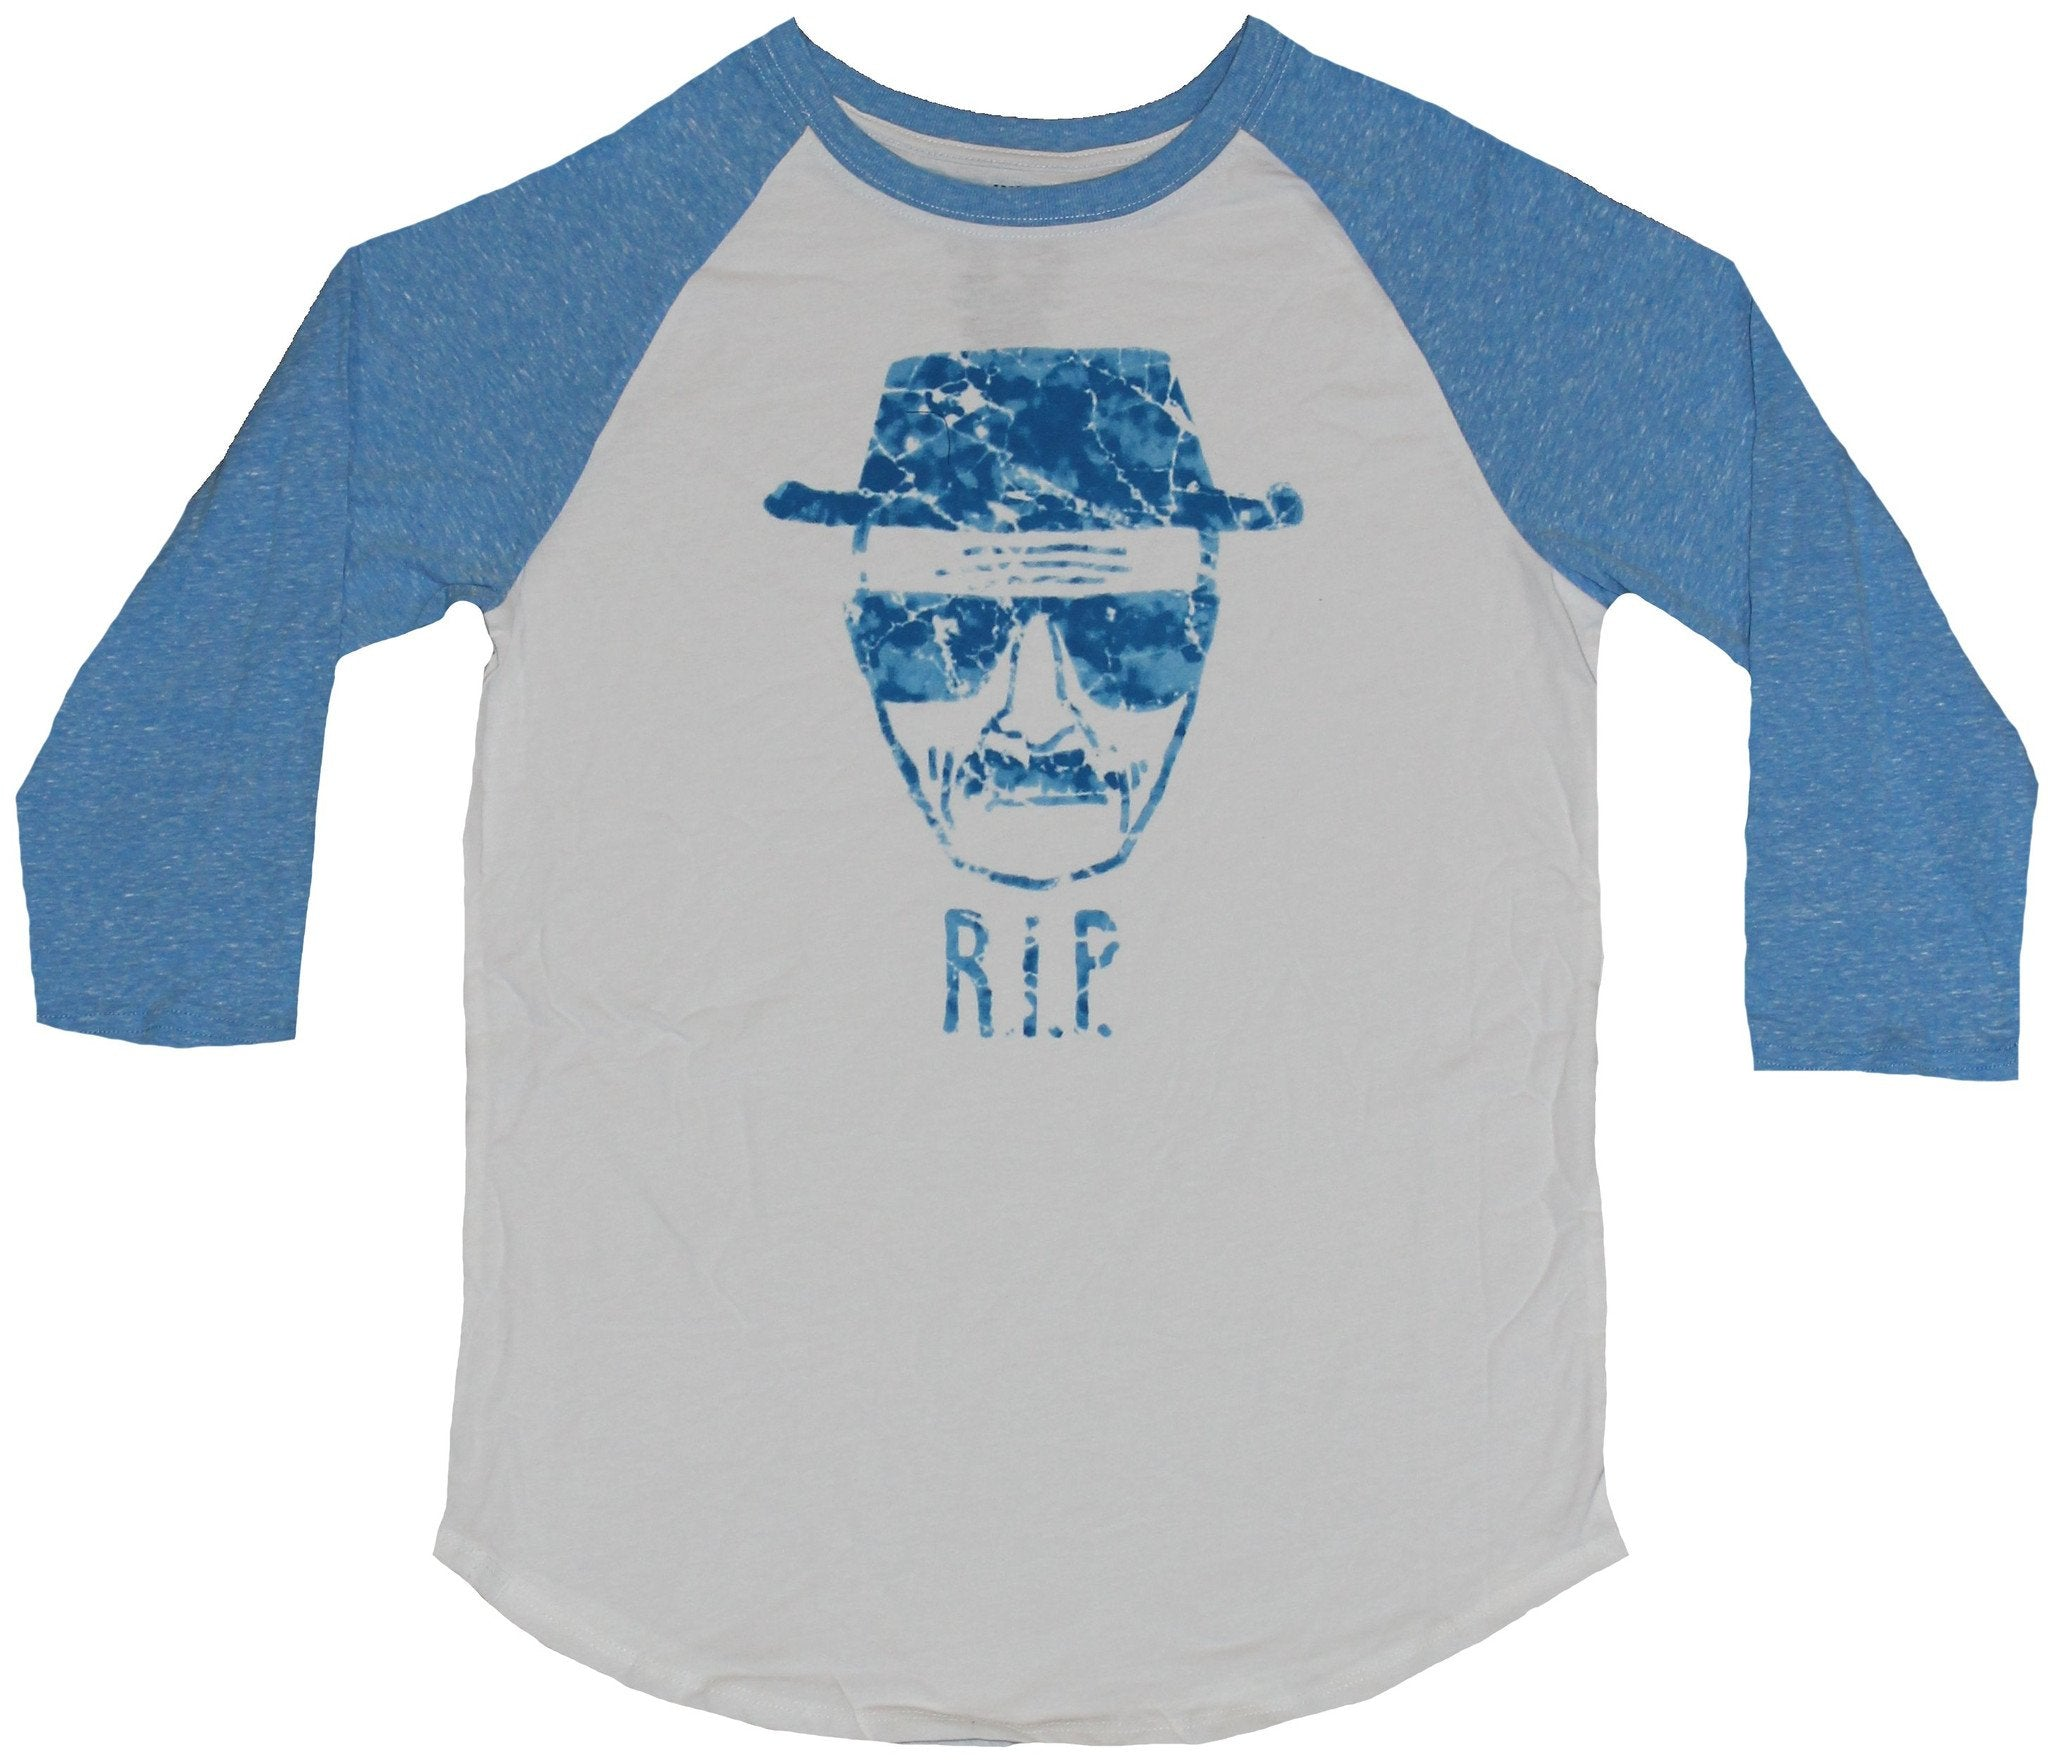 Breaking Bad 3/4 Sleeve Mens T-Shirt - Heisenberg RIP Cracked Ice Blue Sketch